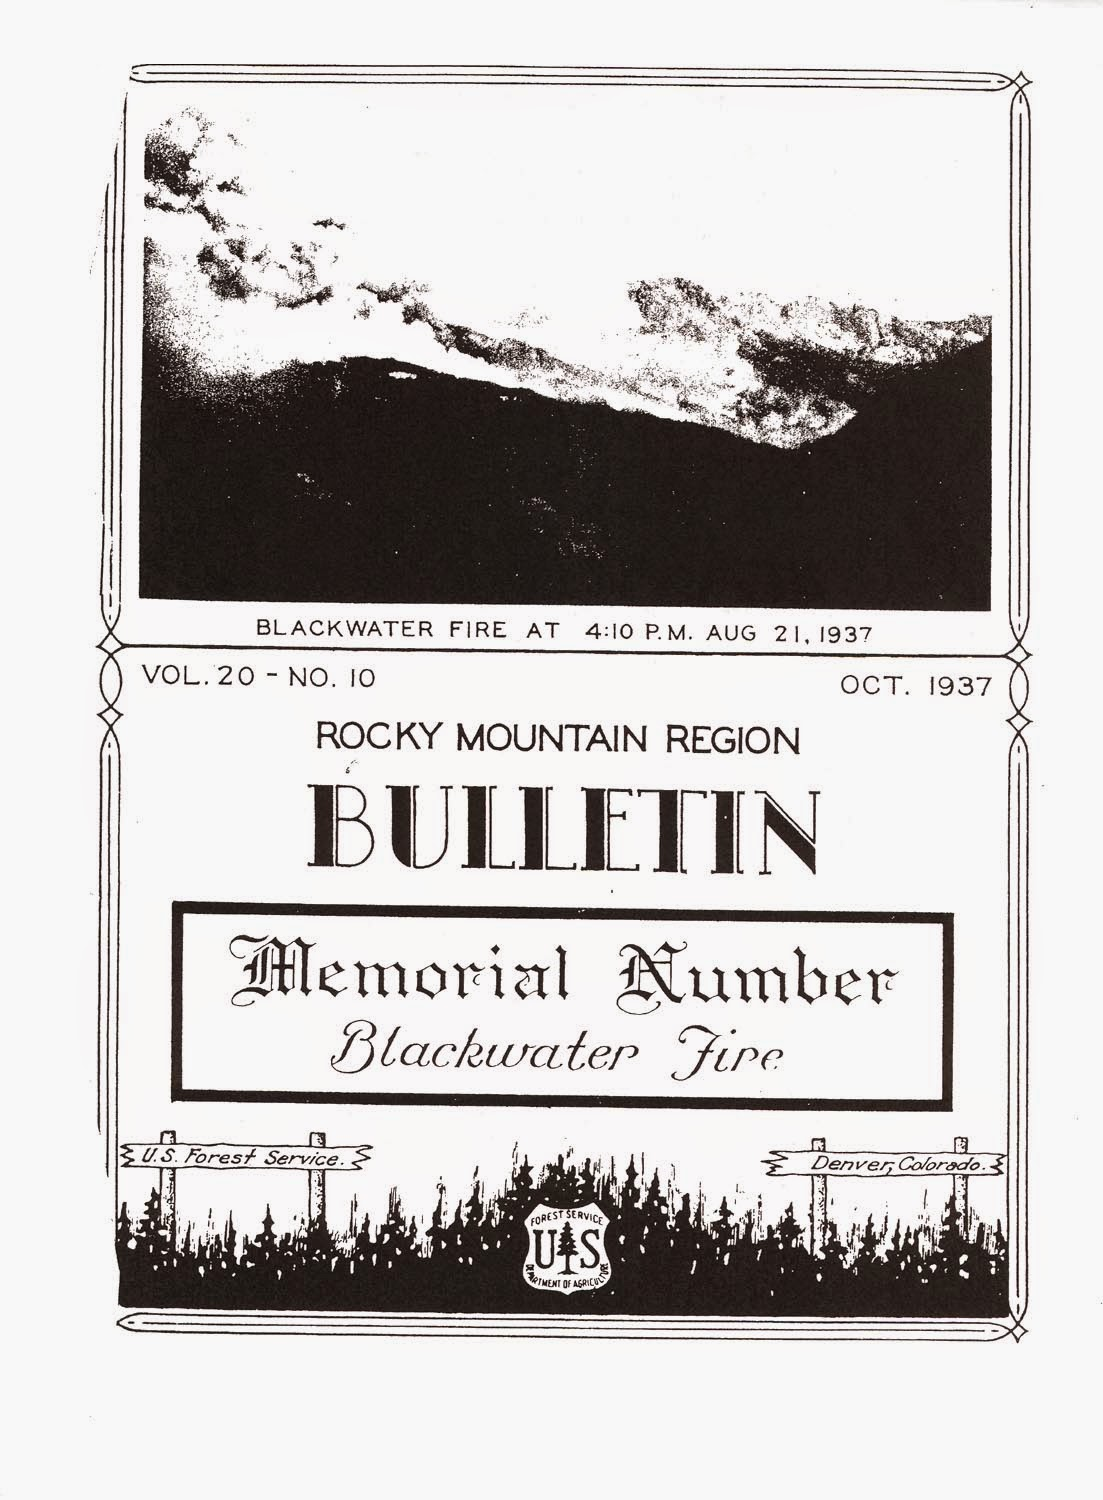 Rocky Mountain Region Bulletin - Blackwater Fire 1937